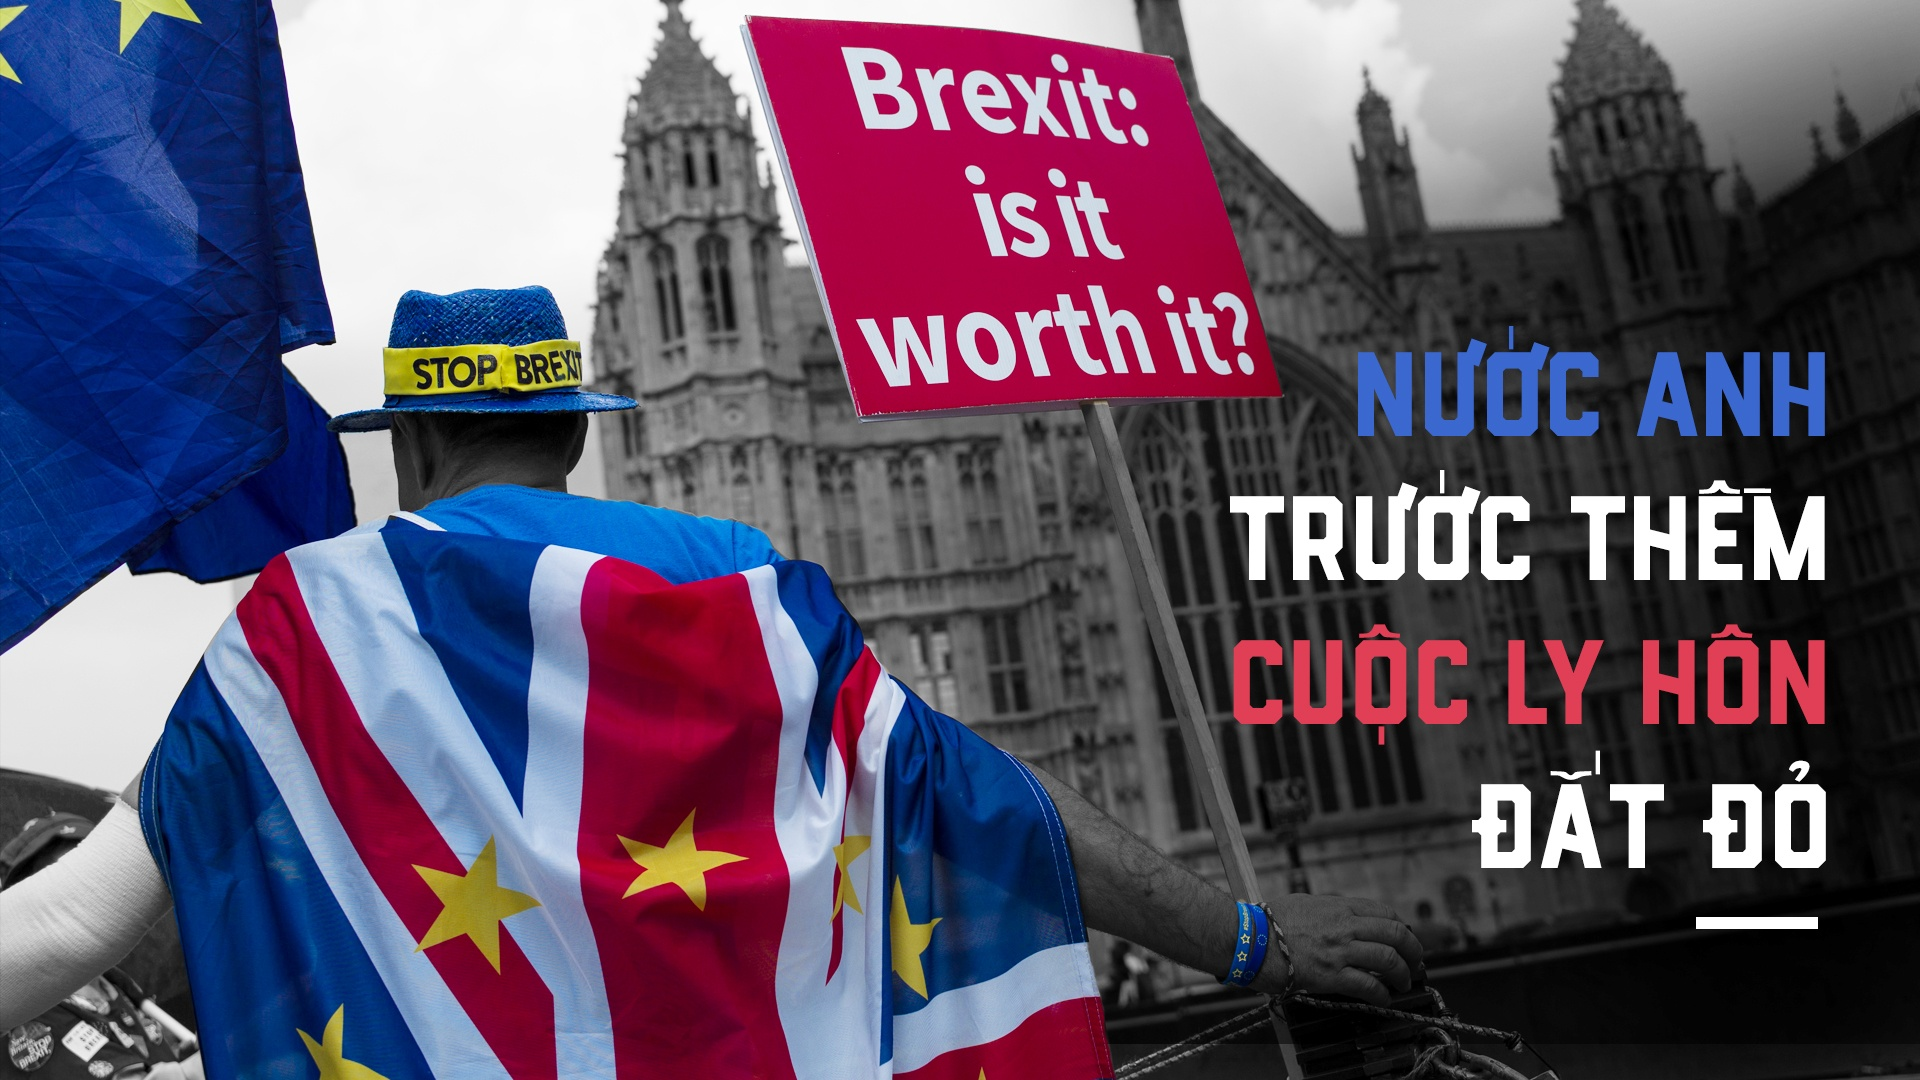 6 thang truoc Brexit, nuoc Anh so hai cuoc ly hon dat do hinh anh 2